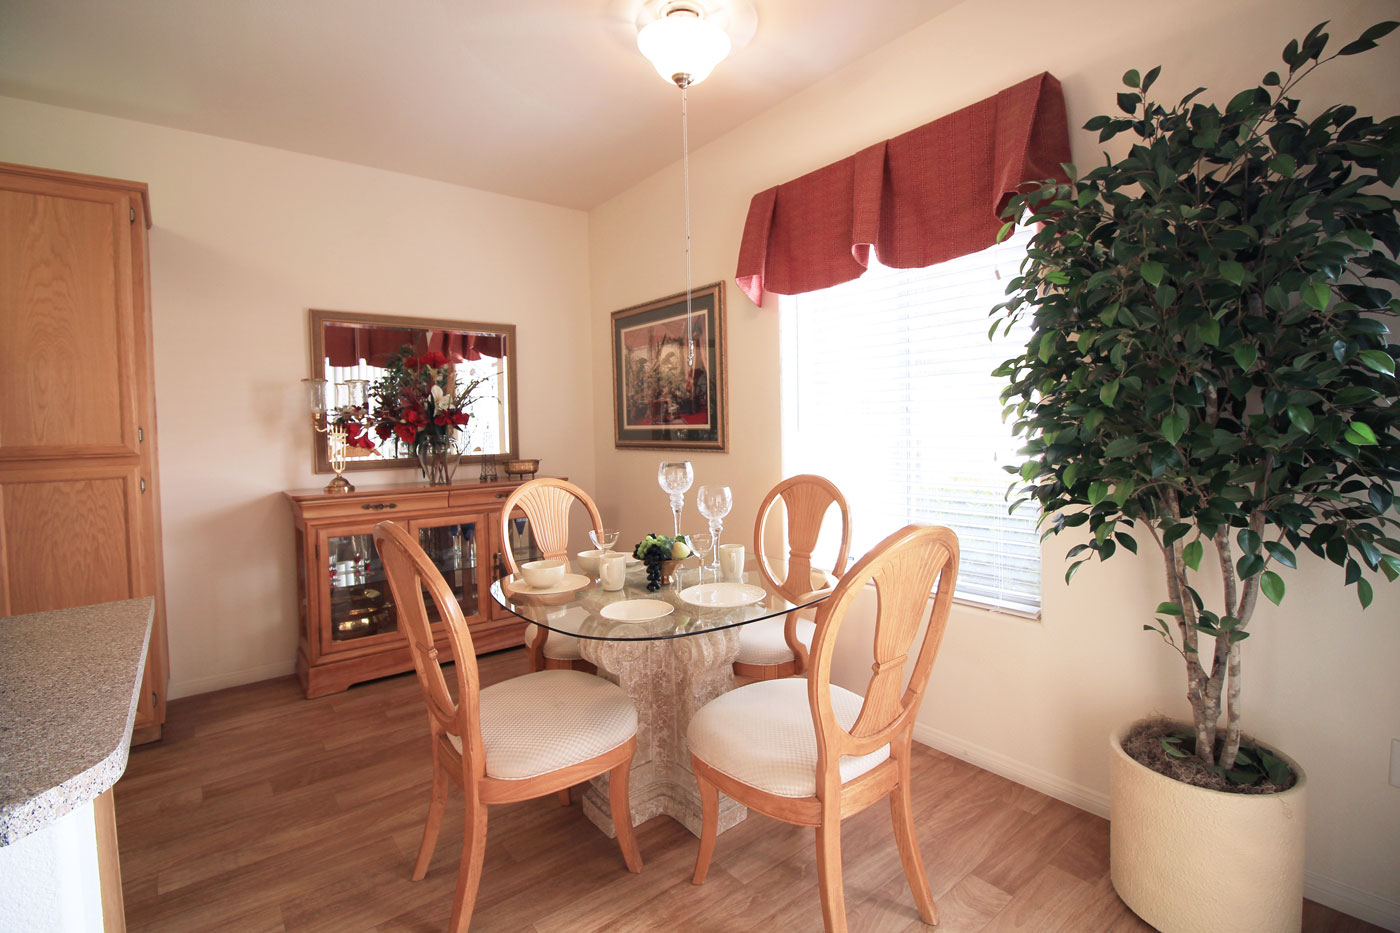 Dining room view with large artificial plant in view.